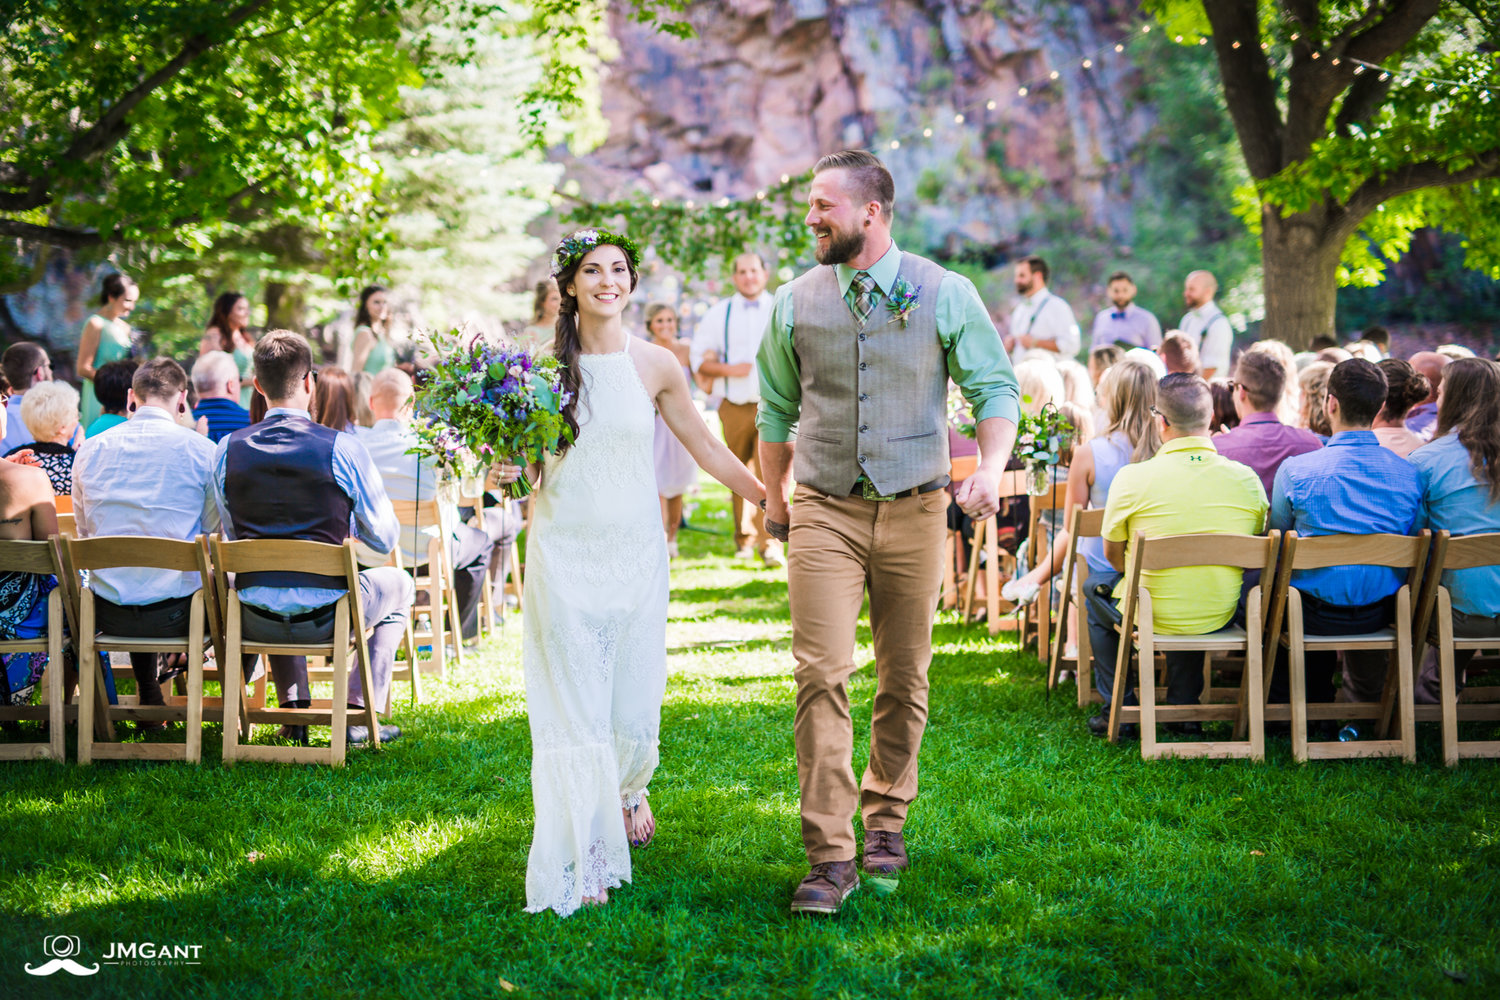 River bend lyons colorado wedding shelby and nate jmgant river bend lyons colorado wedding shelby and nate junglespirit Image collections